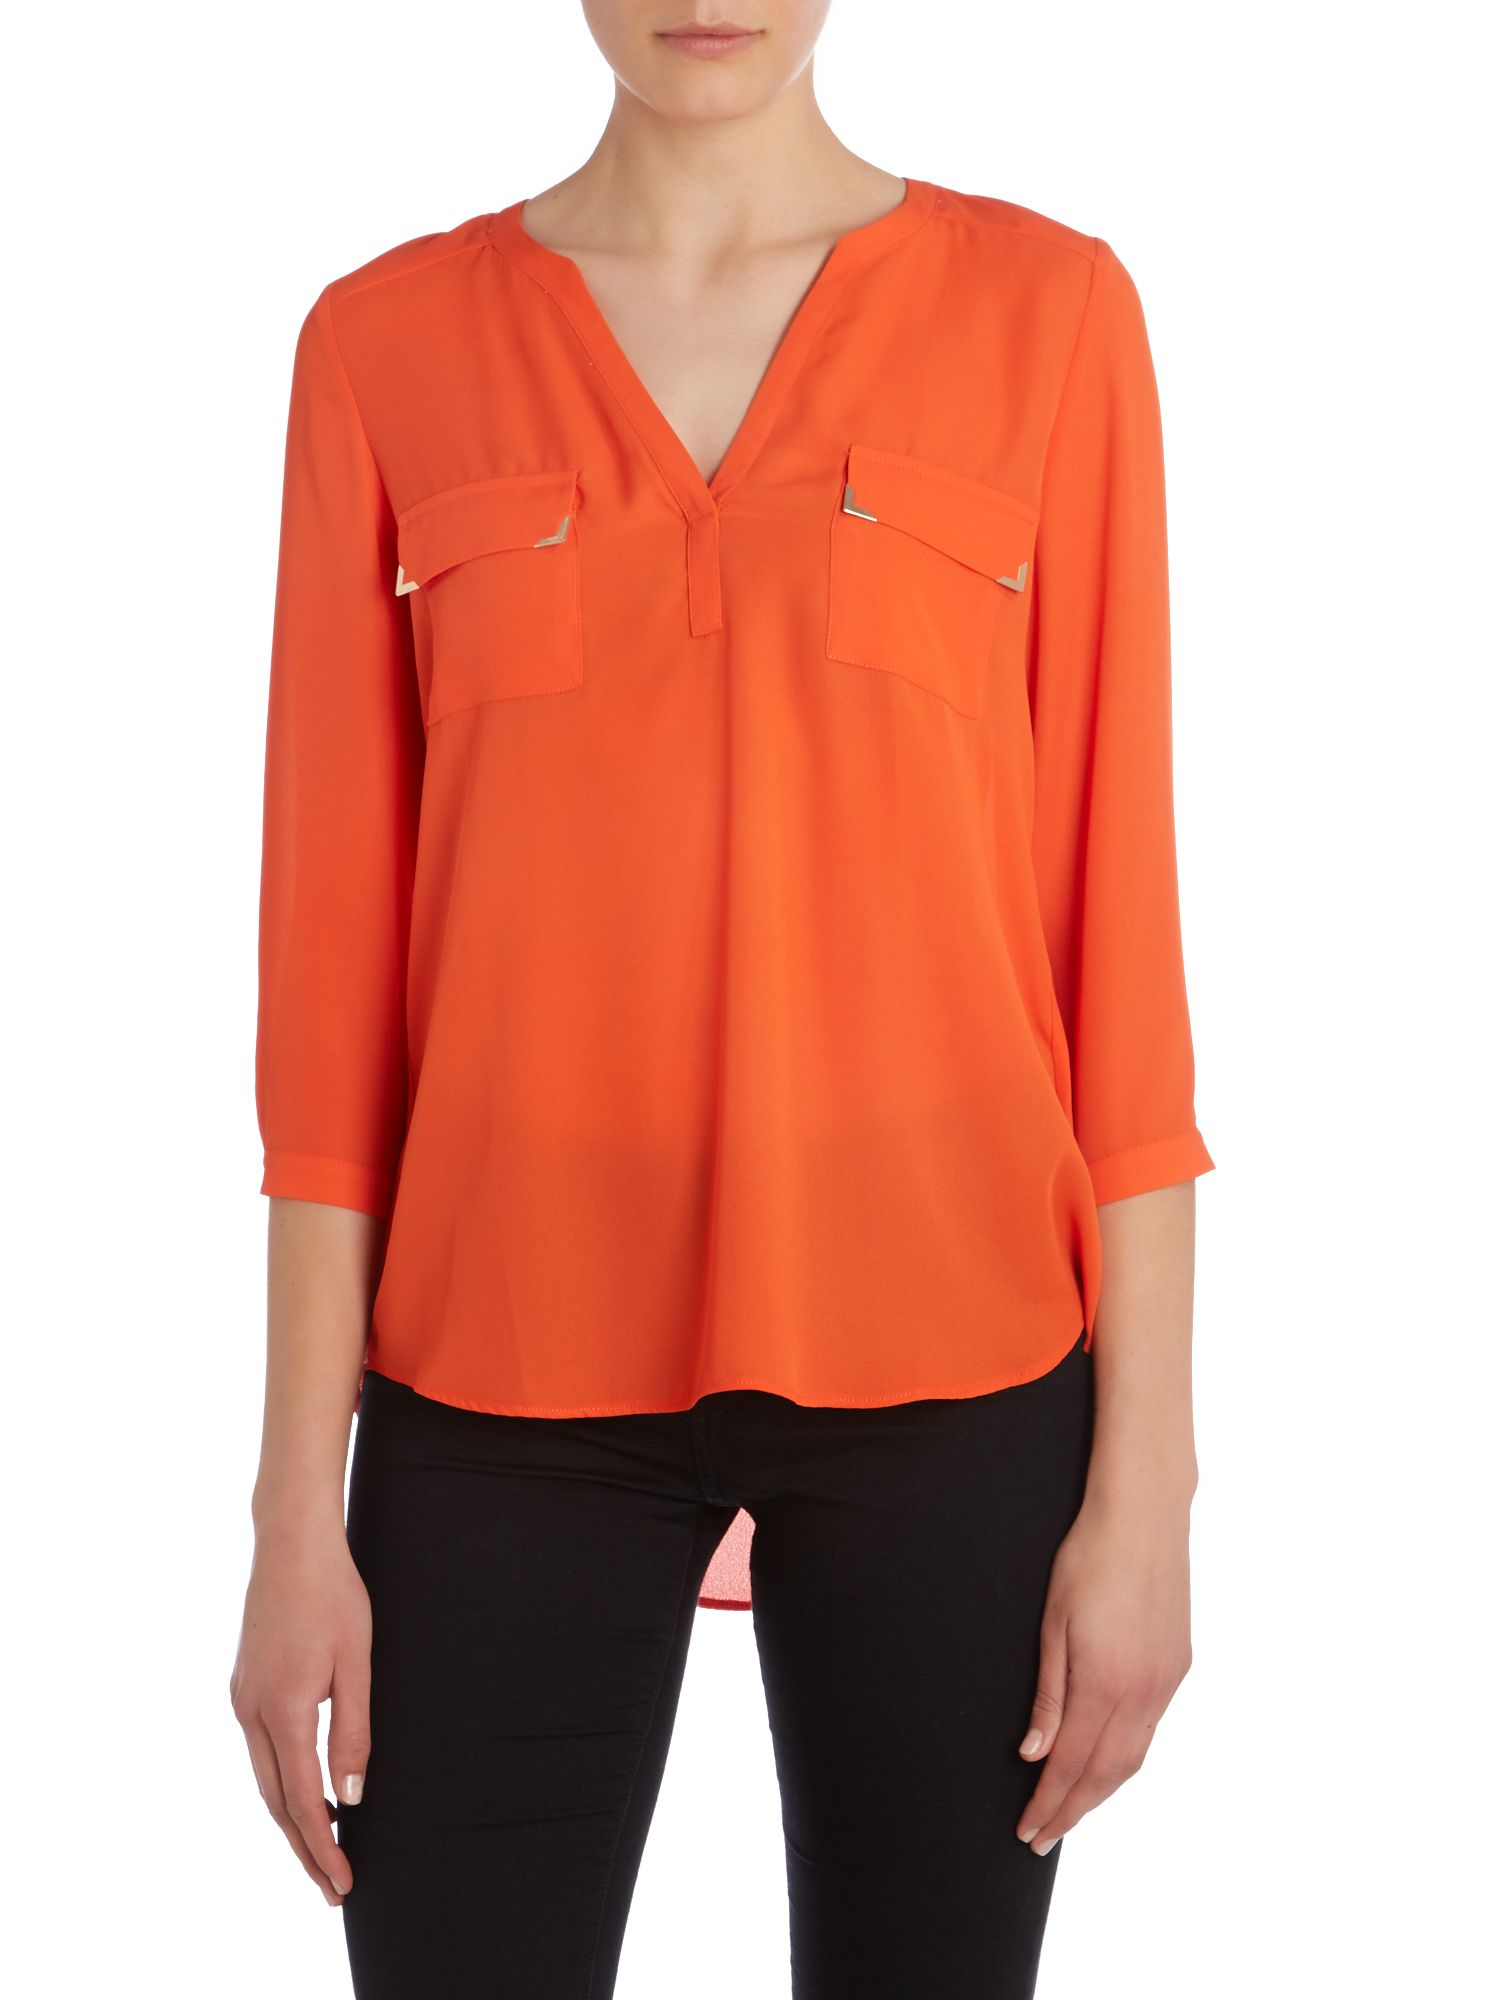 Pocket front v neck blouse